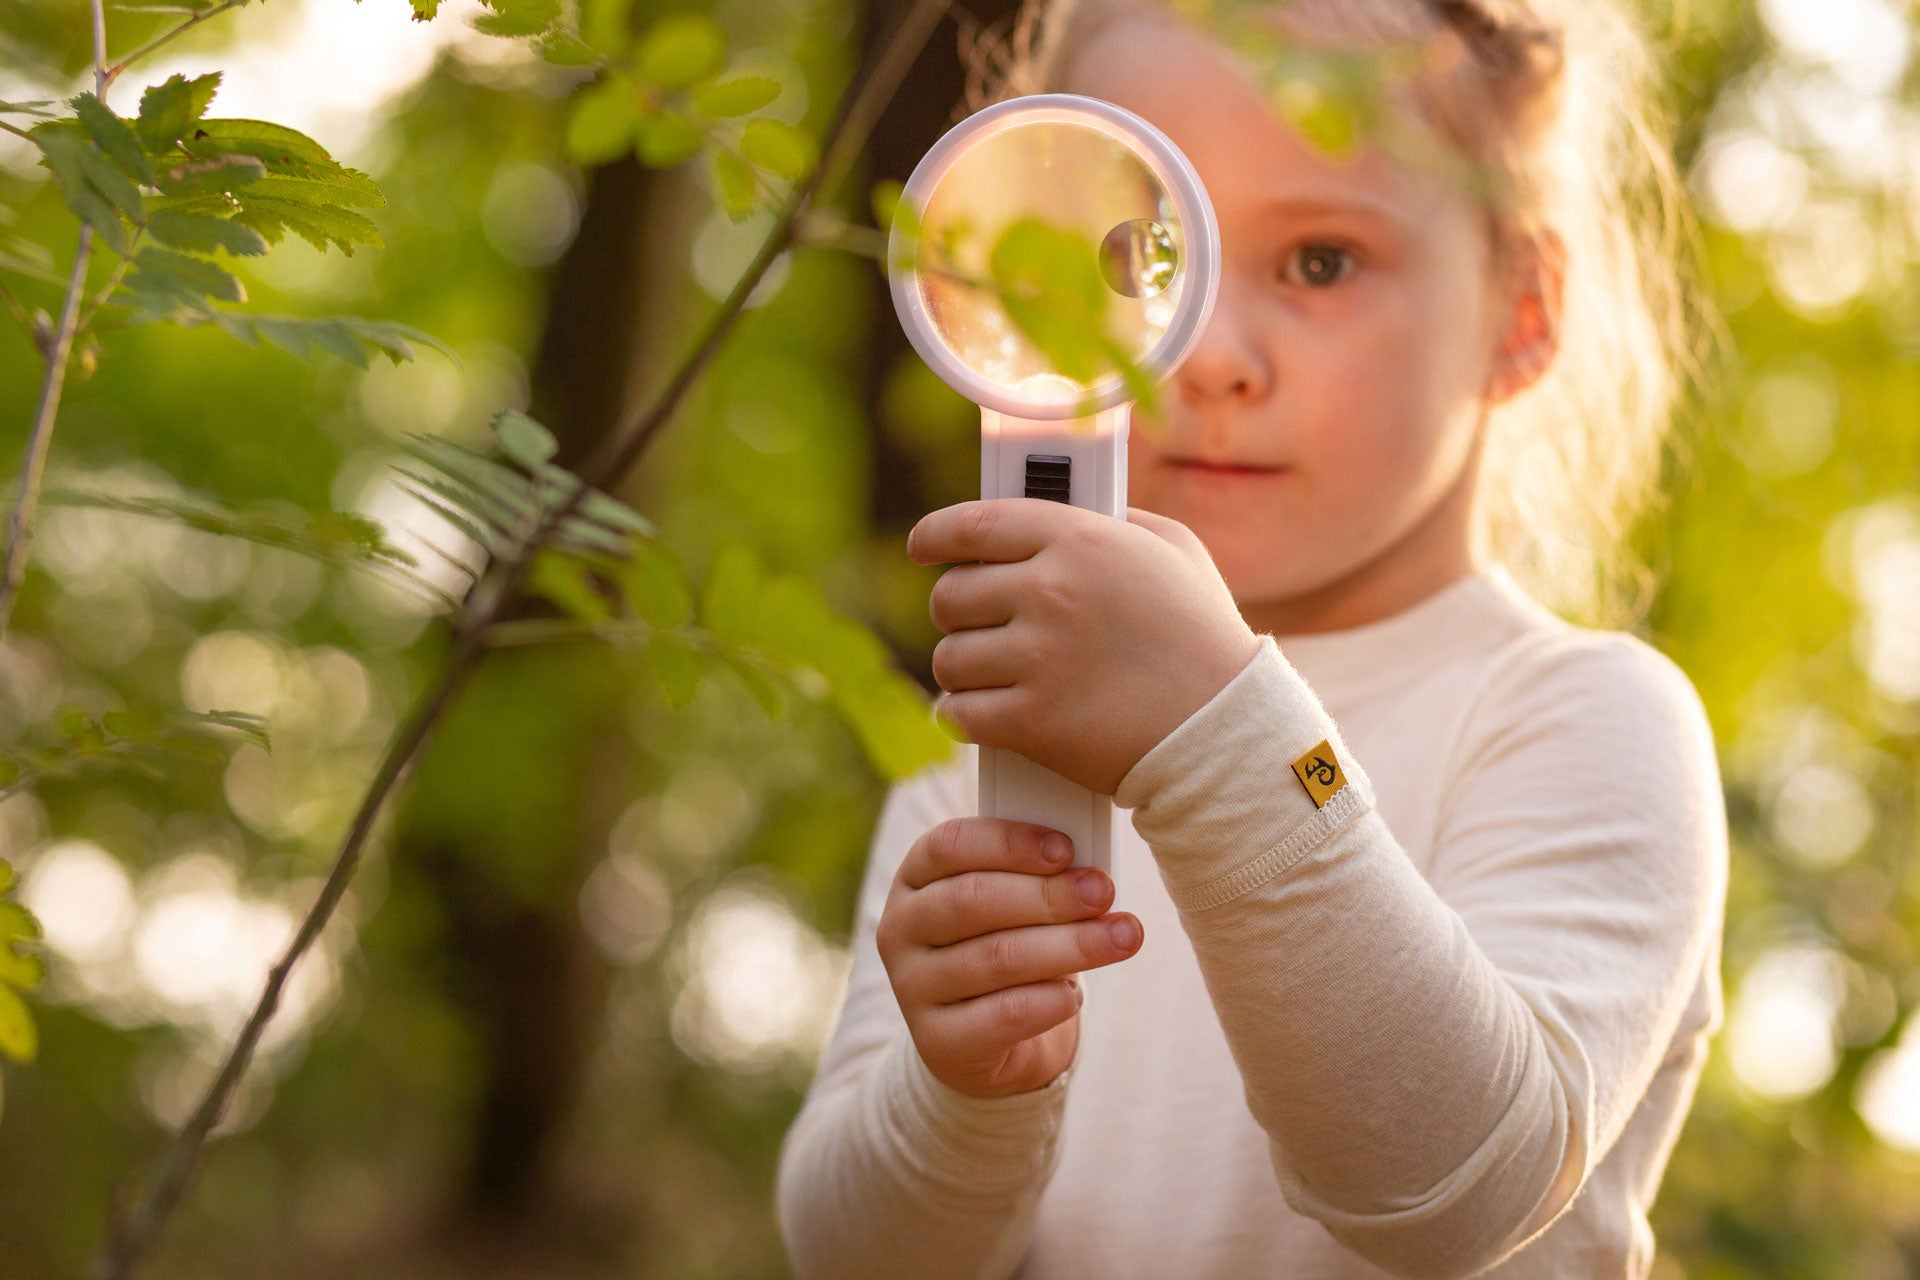 Little-girl-looking-through-magnifying-glass